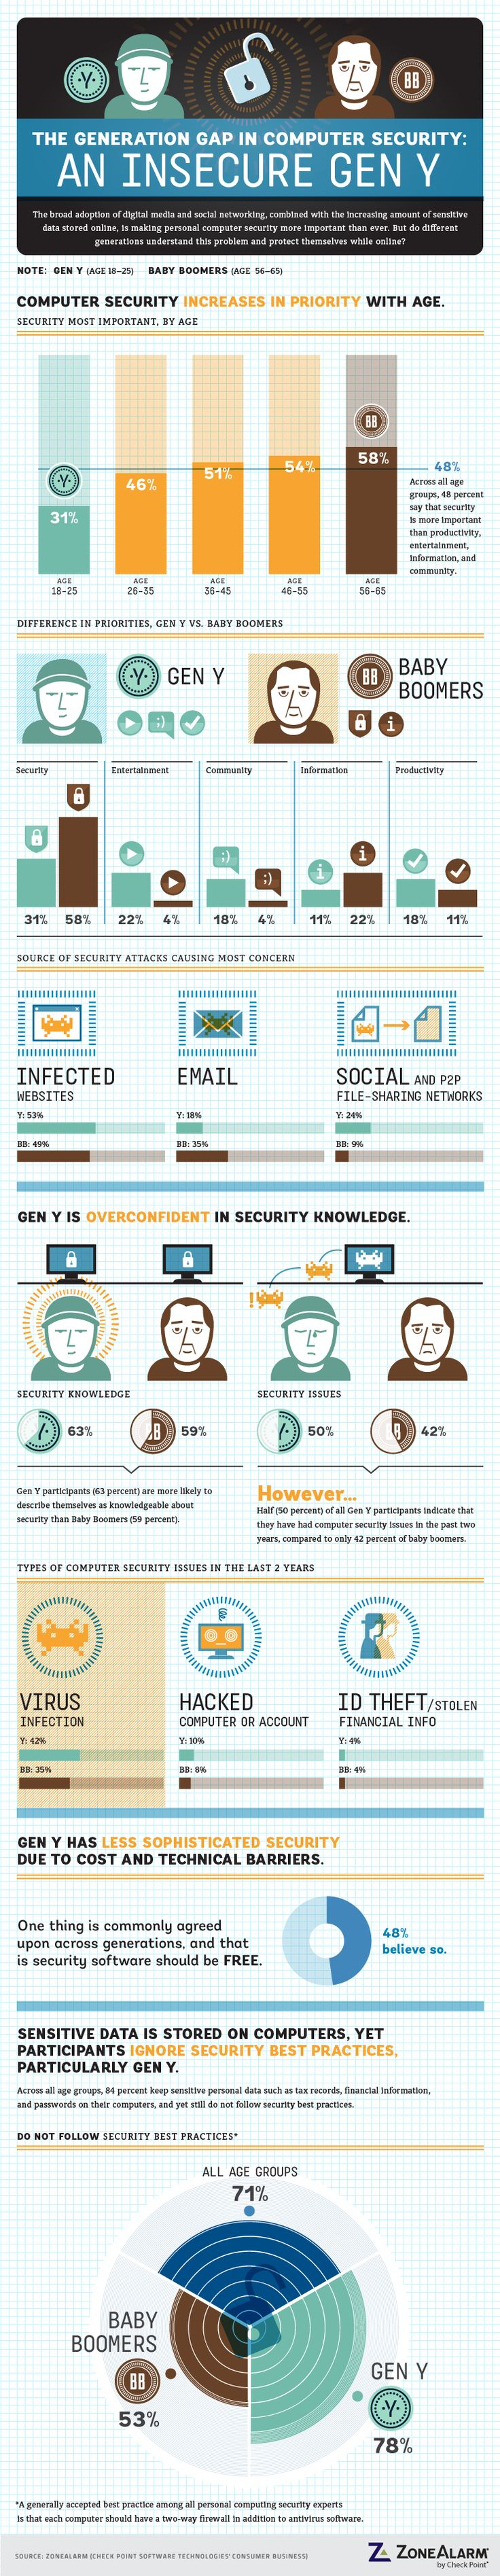 This infographic shows a generation gap in the attitudes of Gen Y users and Baby Boomers in their attitudes toward computer security.